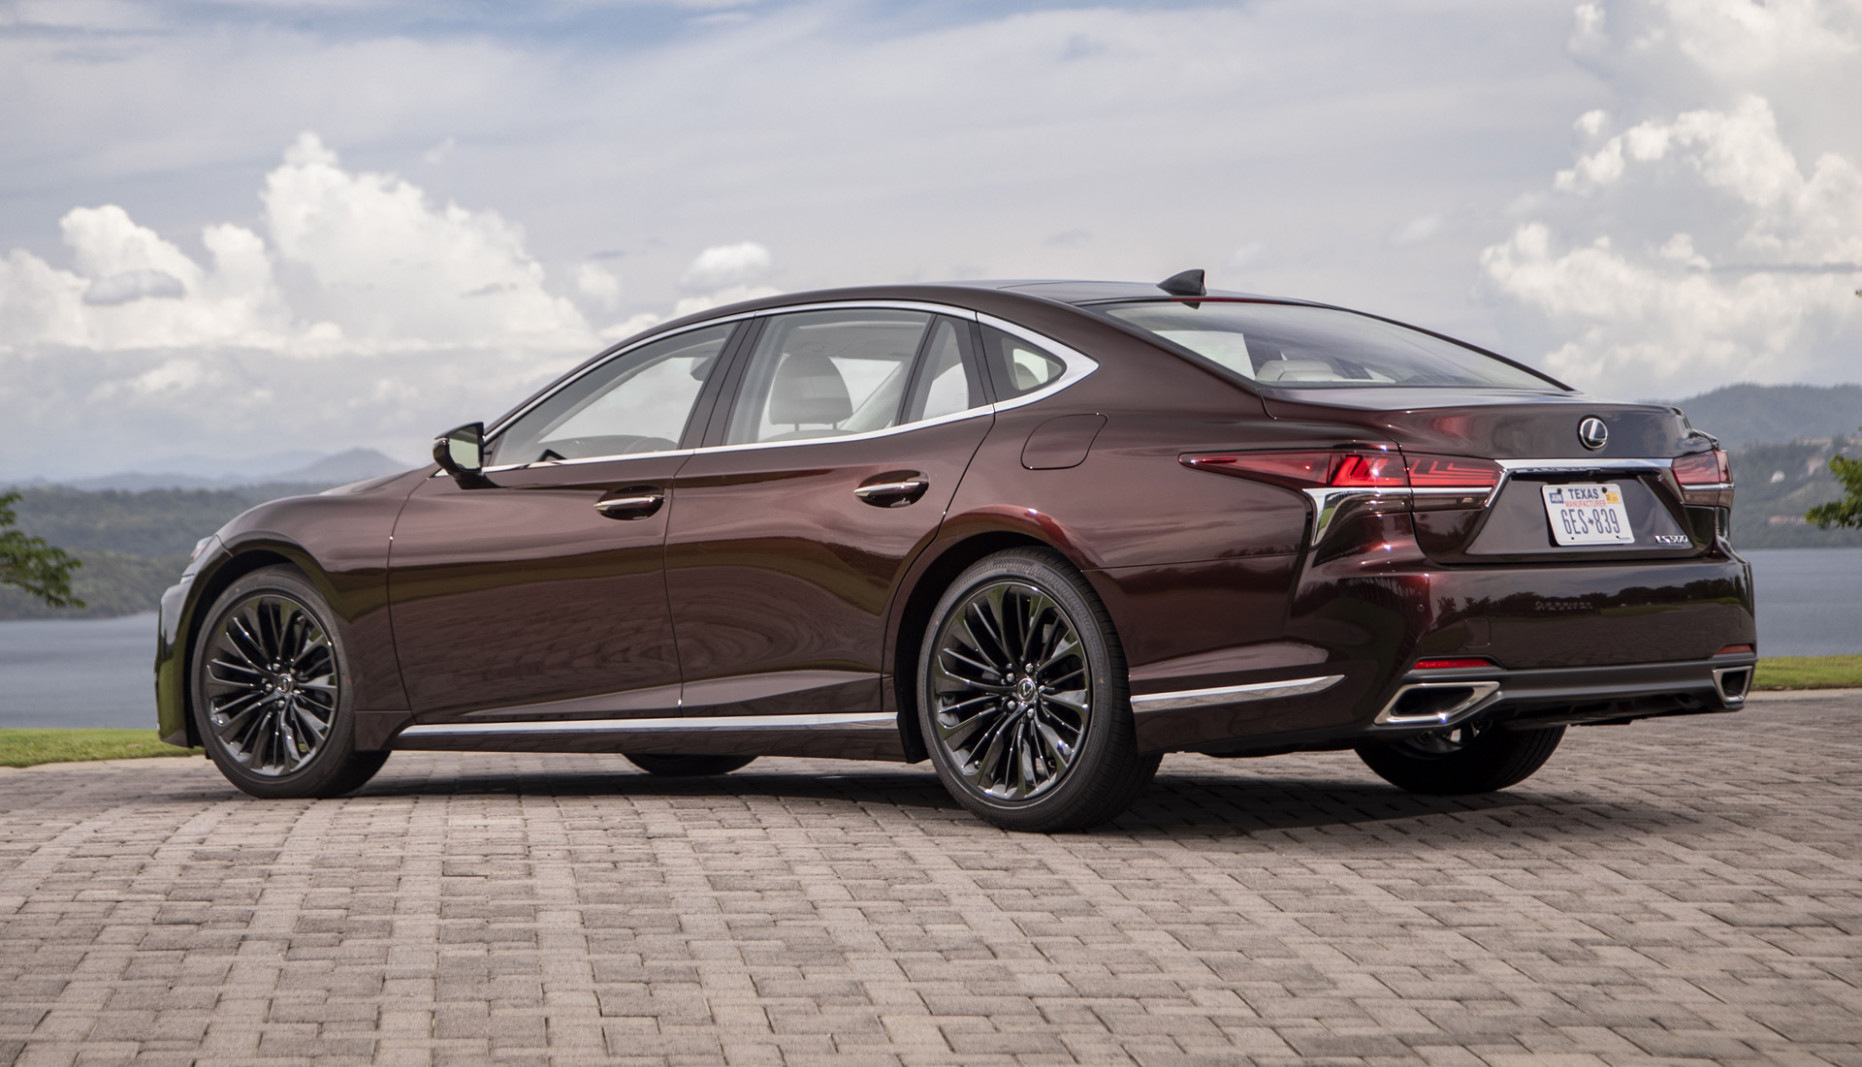 12 Lexus LS Review, Ratings, Specs, Prices, and Photos - The Car ..